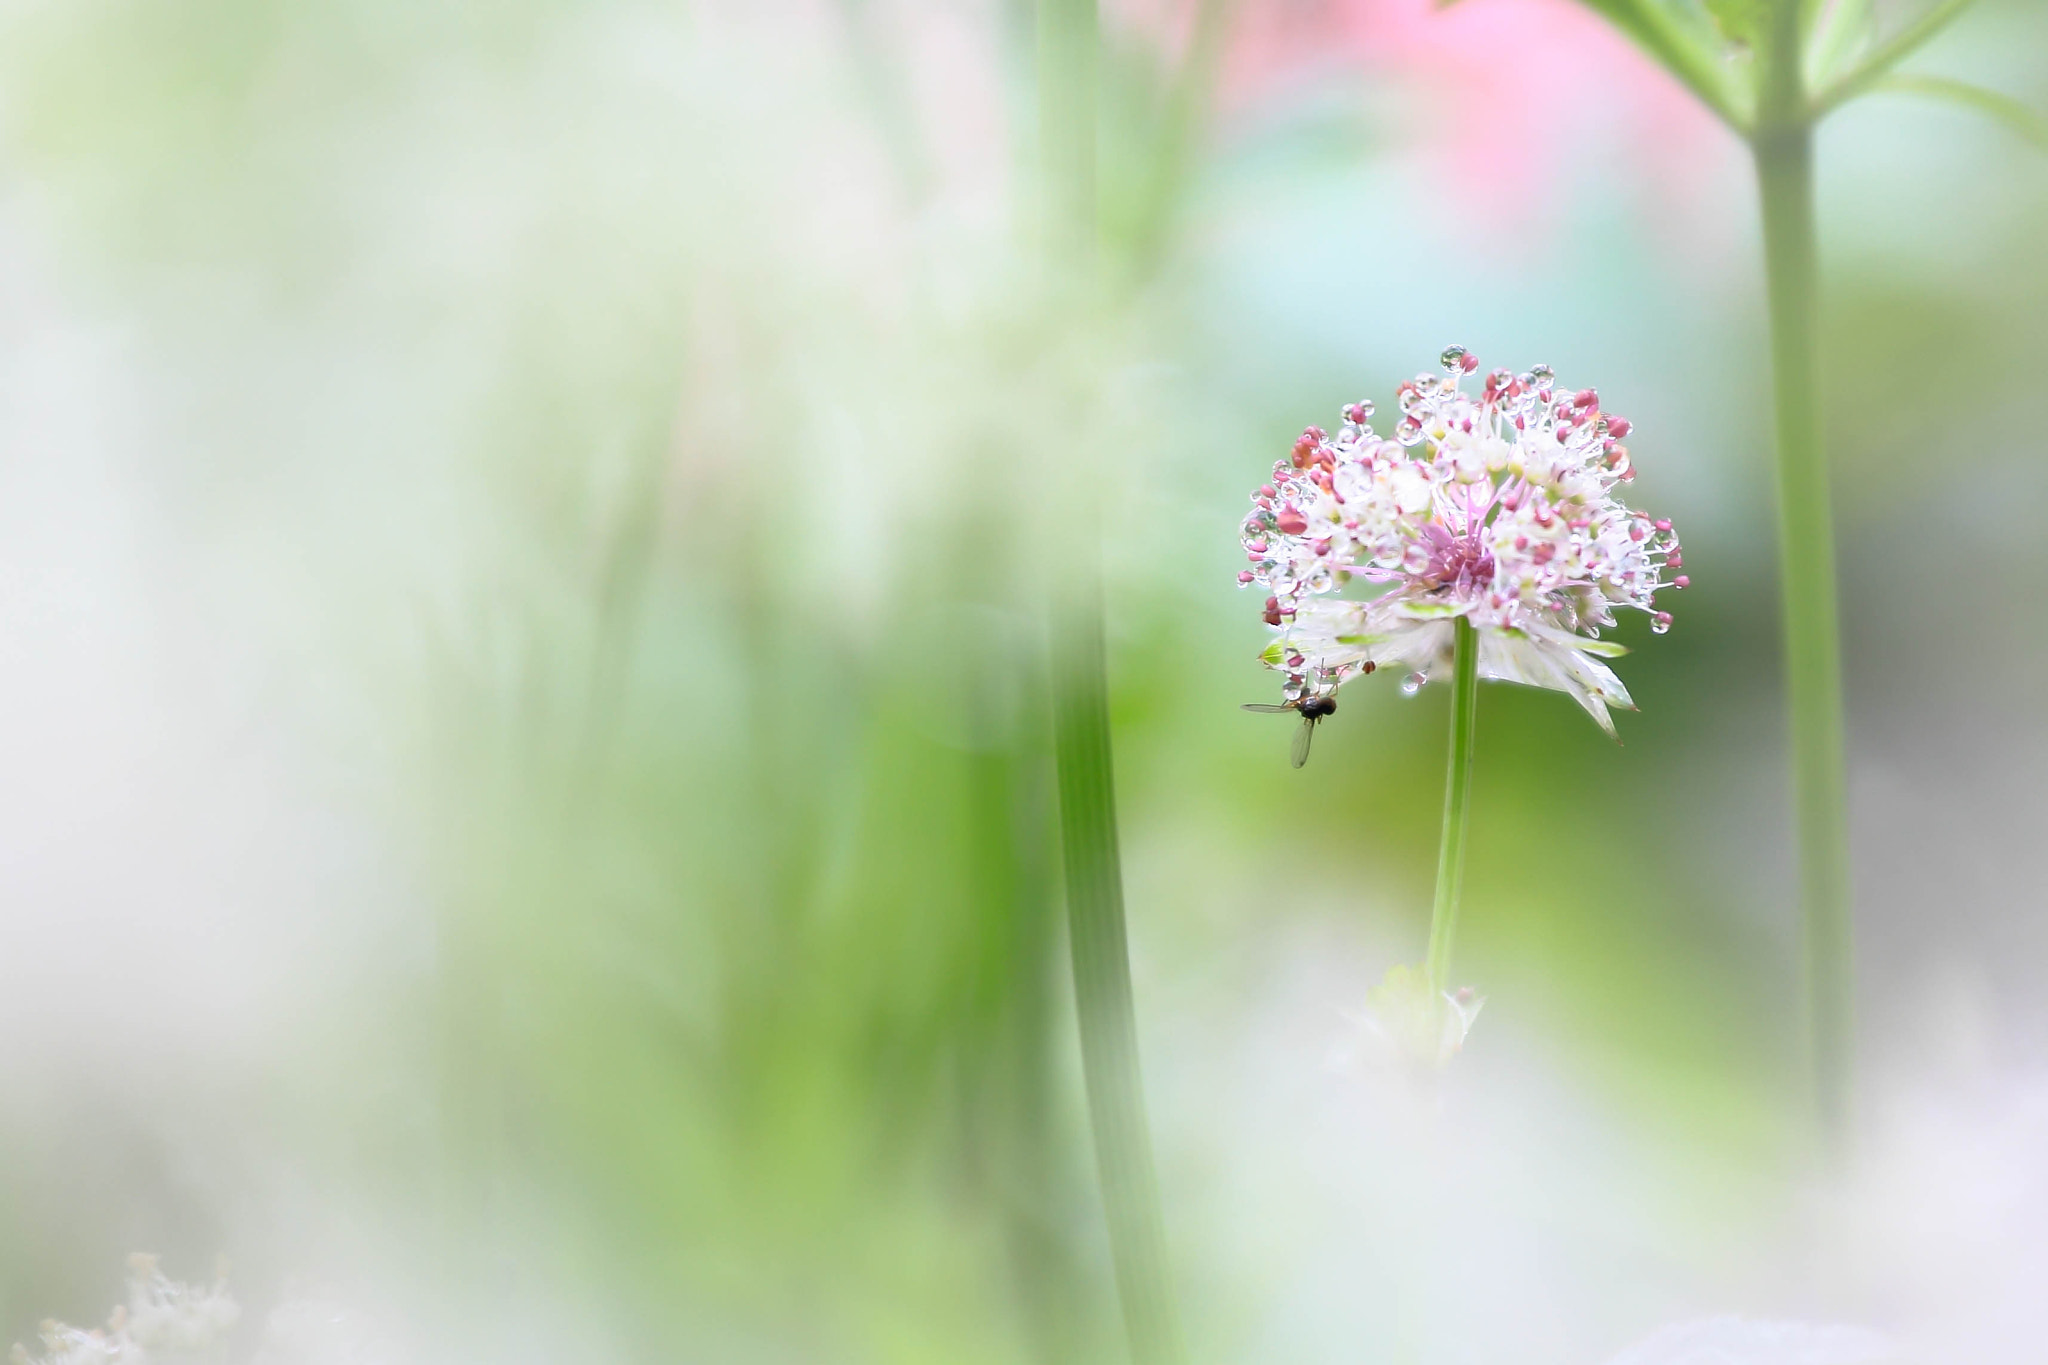 Photograph Sheltering under the flower by tooomo_ chiiin on 500px